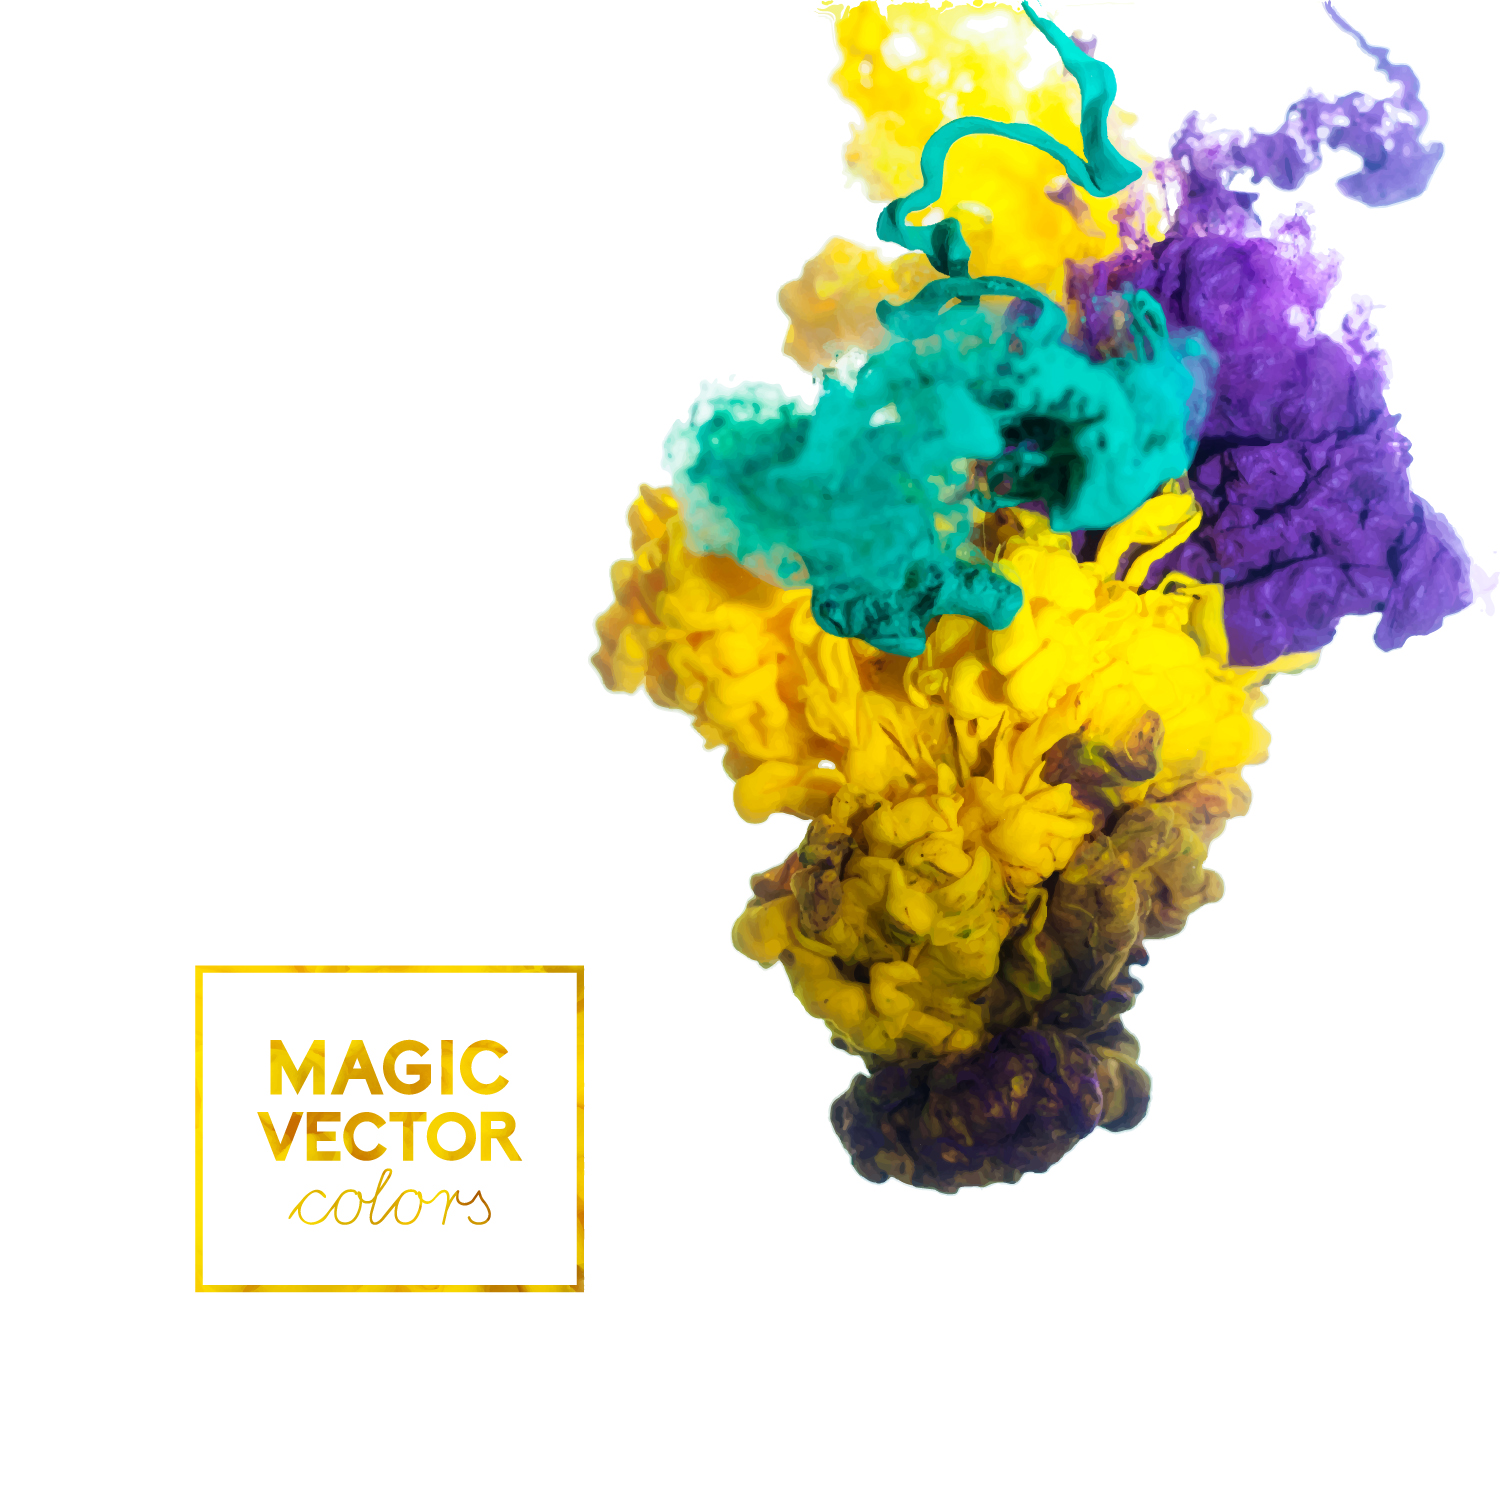 magic ink effect colorful background vector background